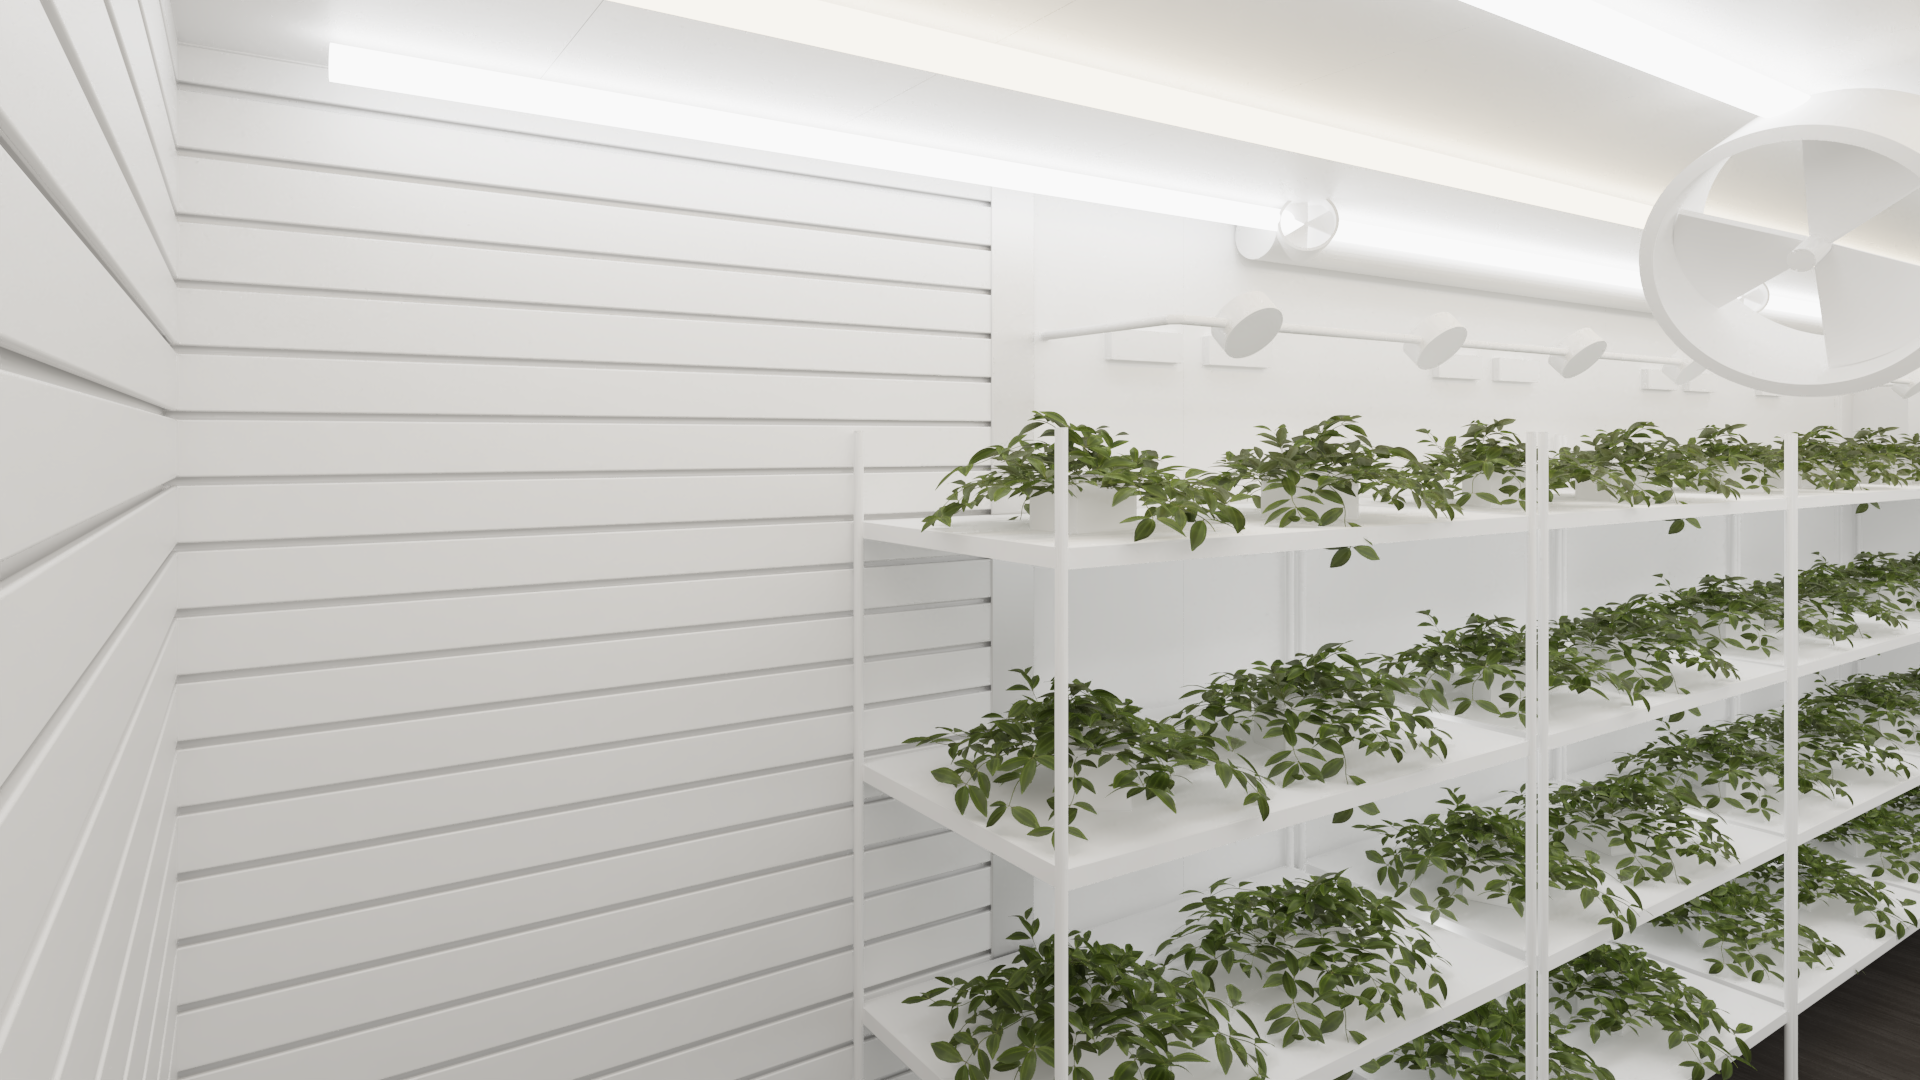 Grow Container View 3. Denoiser (1).png